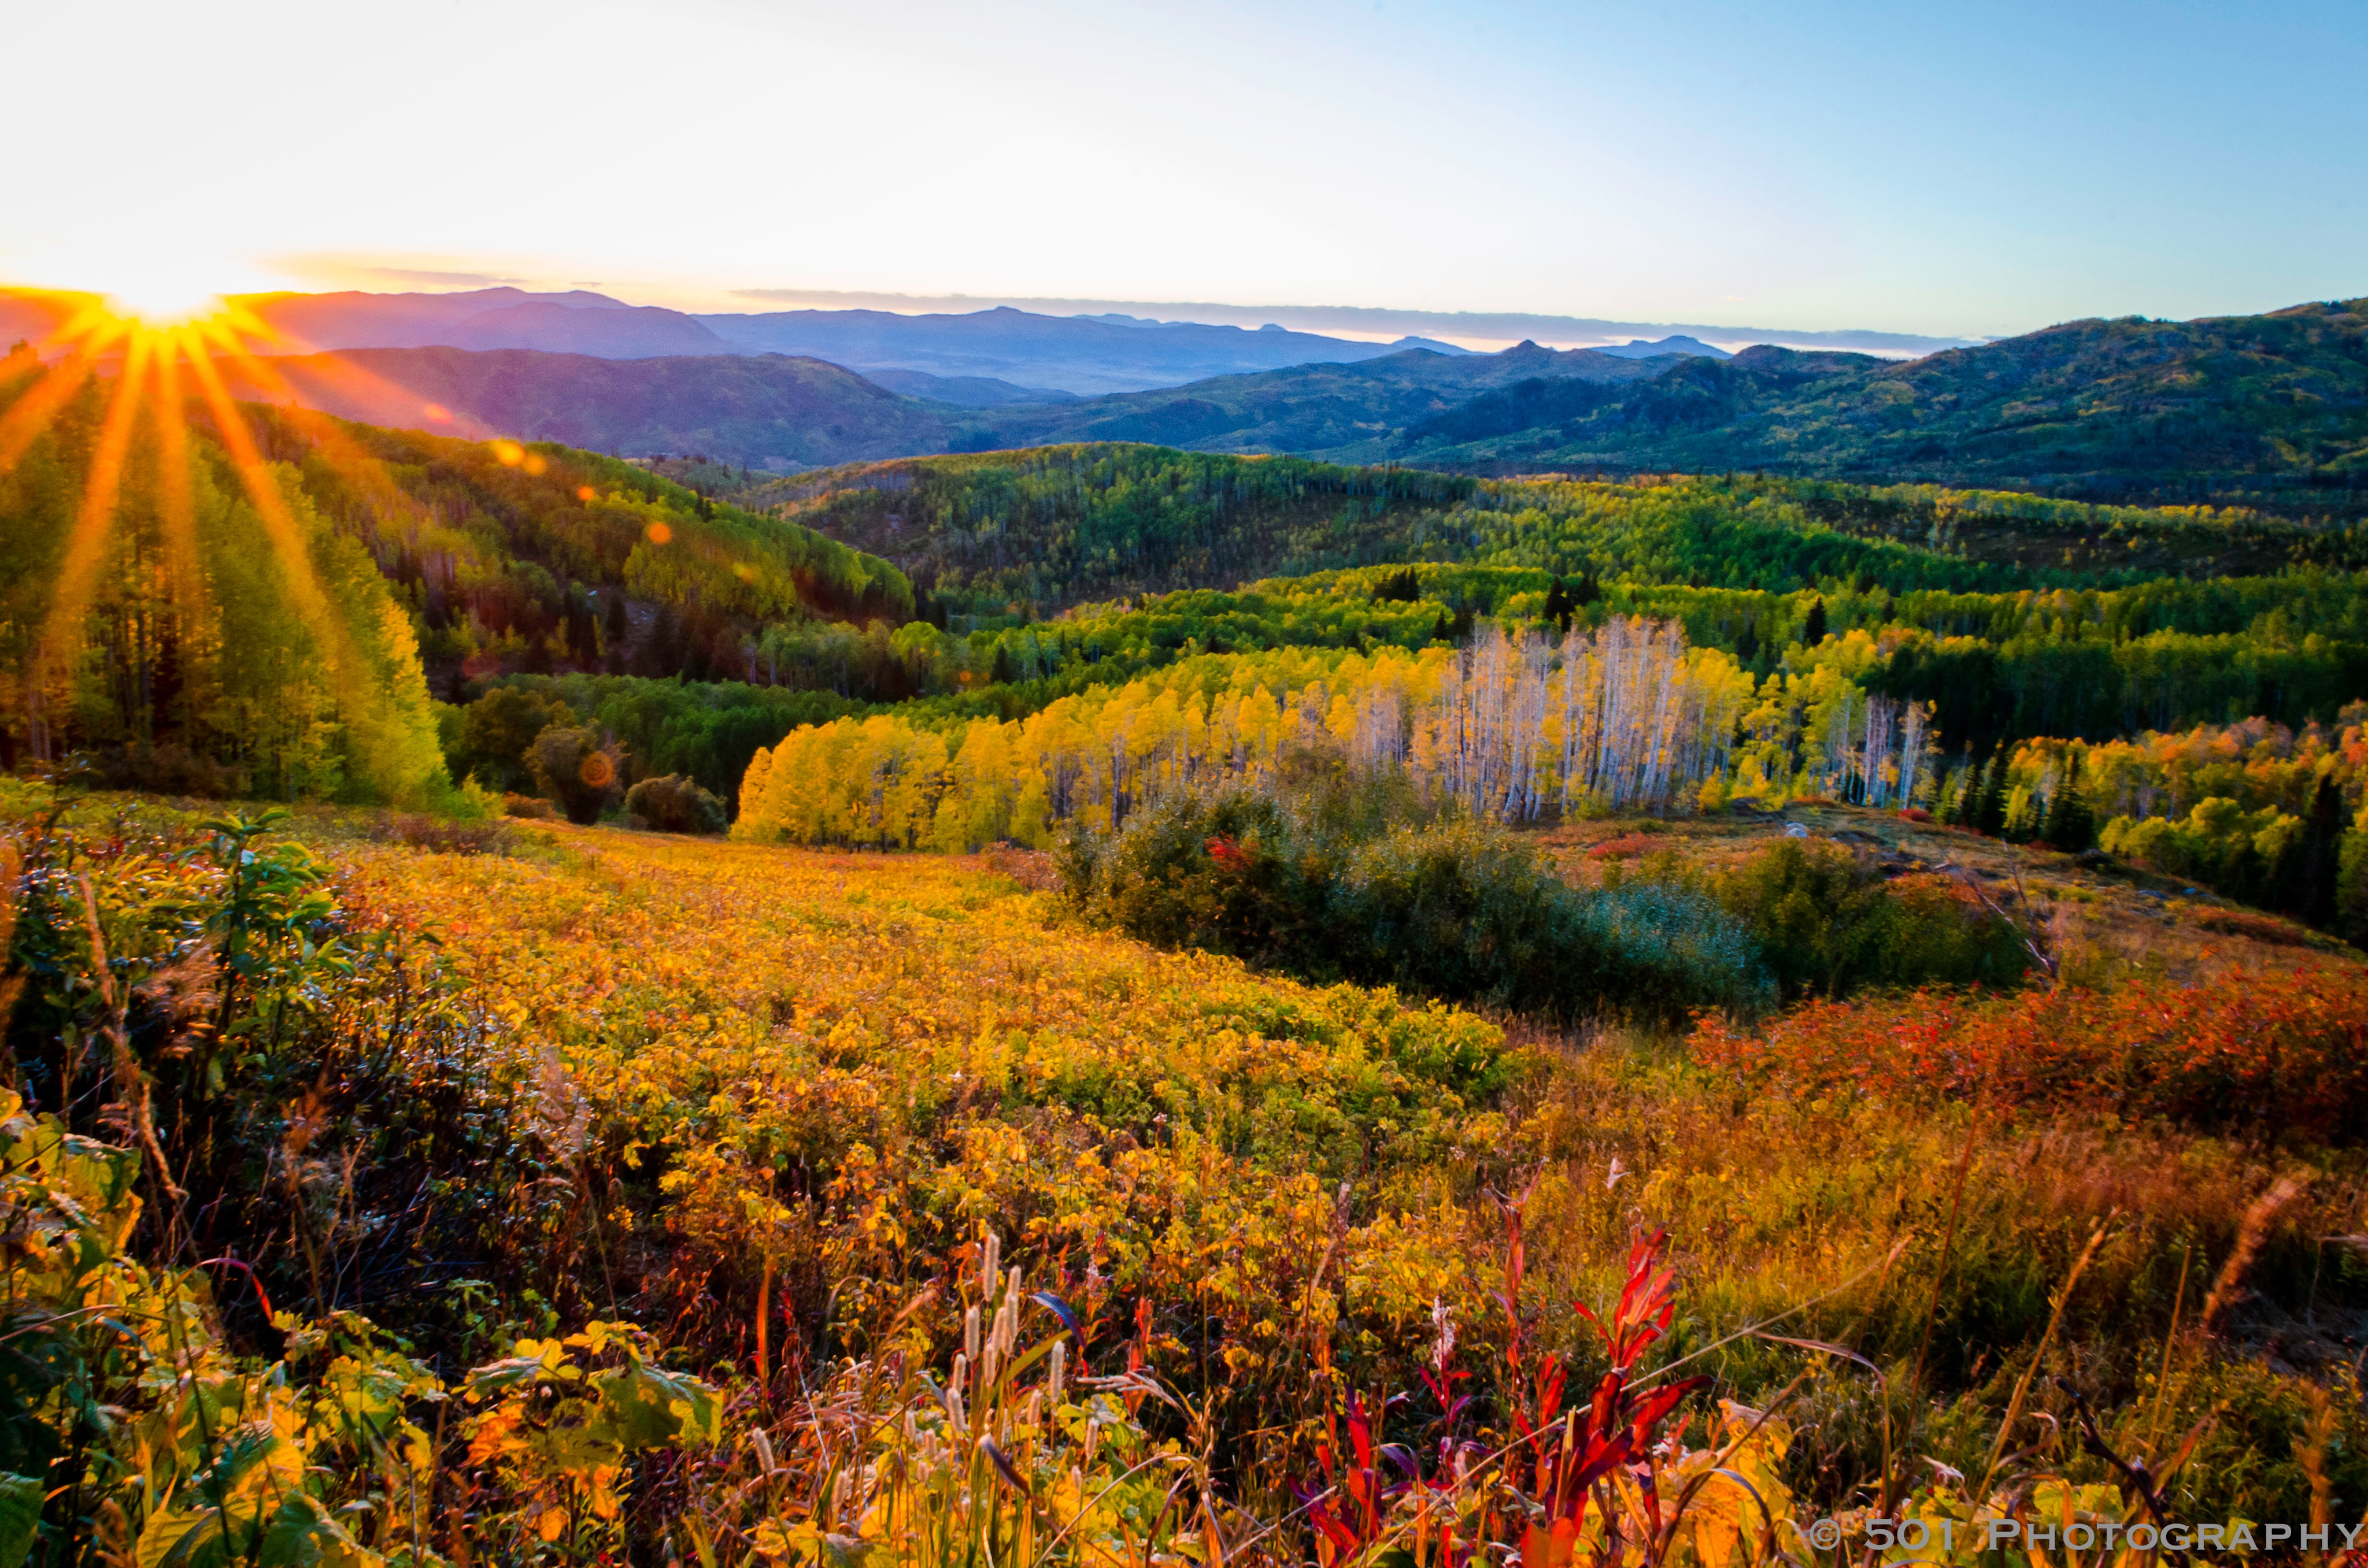 FALL IN LOVE WITH AUTUMN IN STEAMBOAT SPRINGS